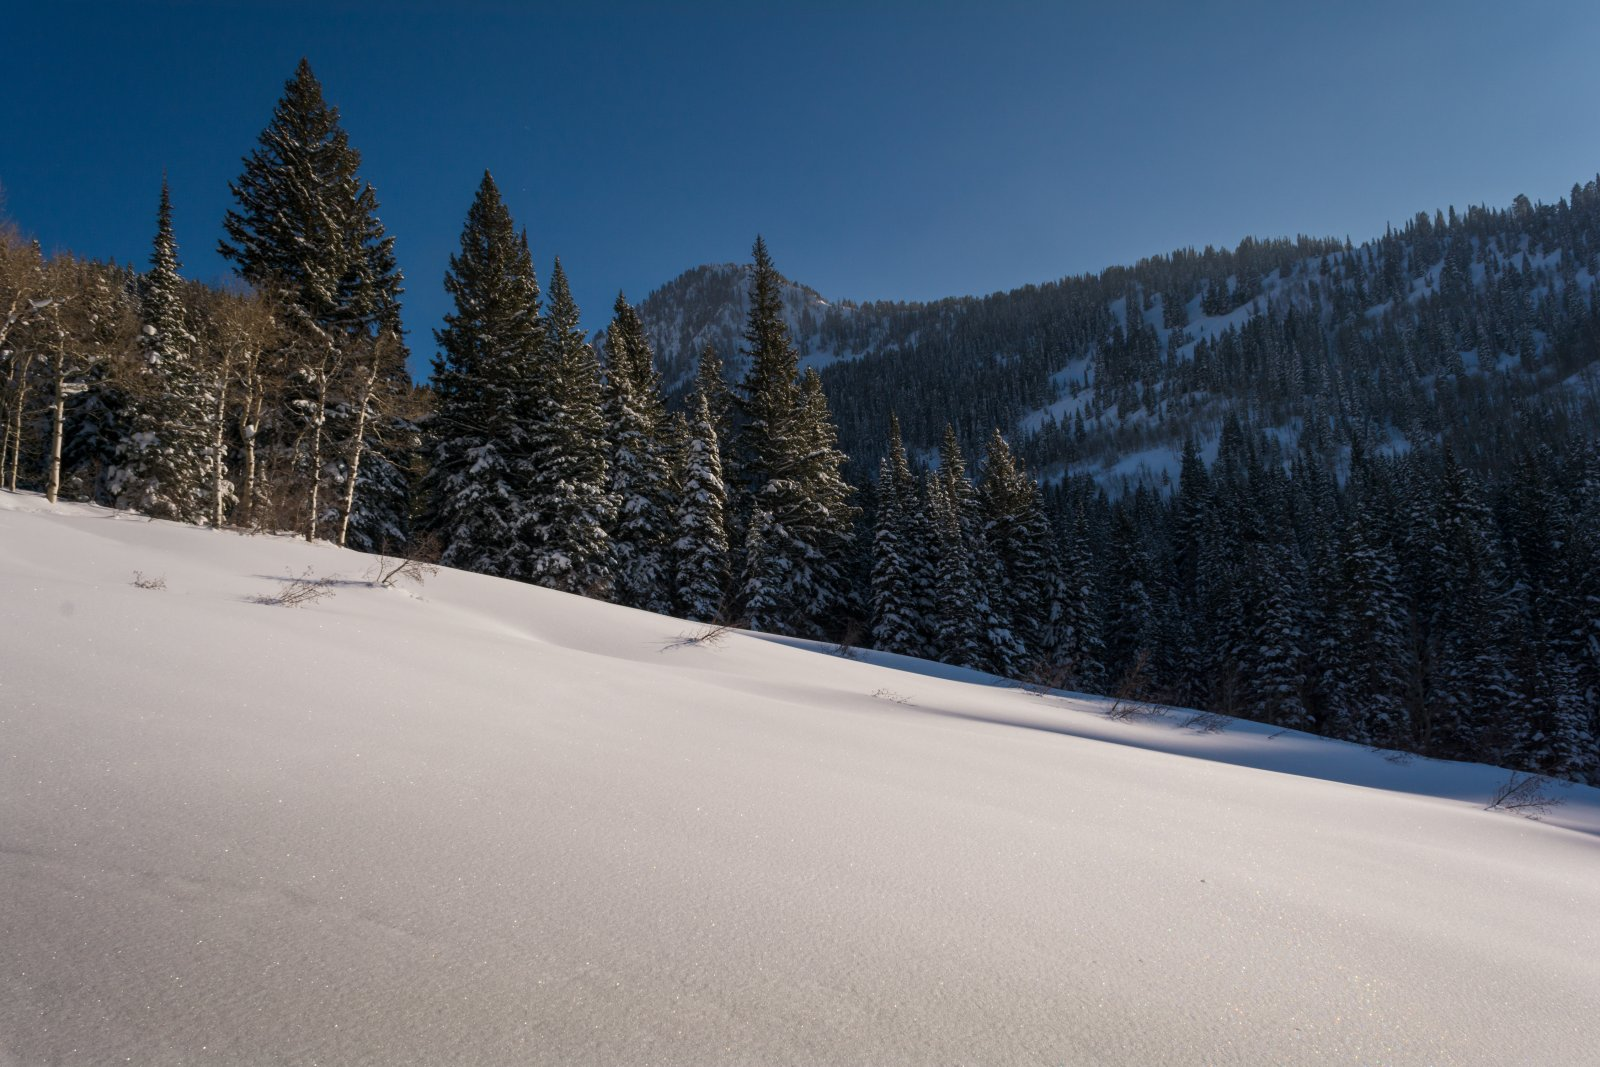 Snowshoeing With Ade0070-sm.jpg